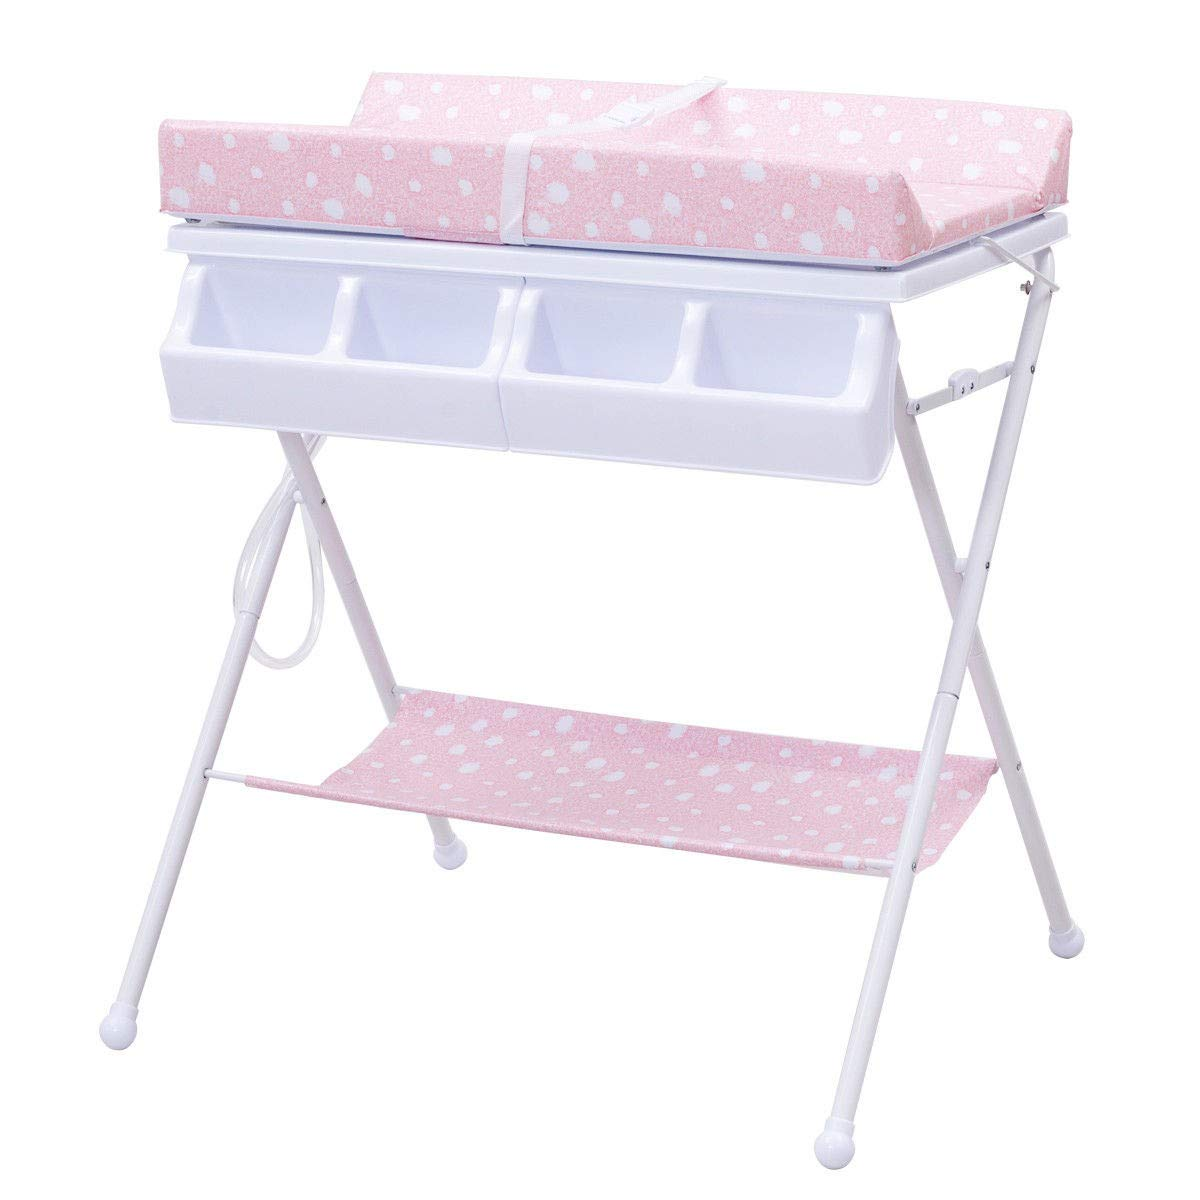 MD Group Foldable Infant Baby Bath Diaper Storage Changing Table, Pink